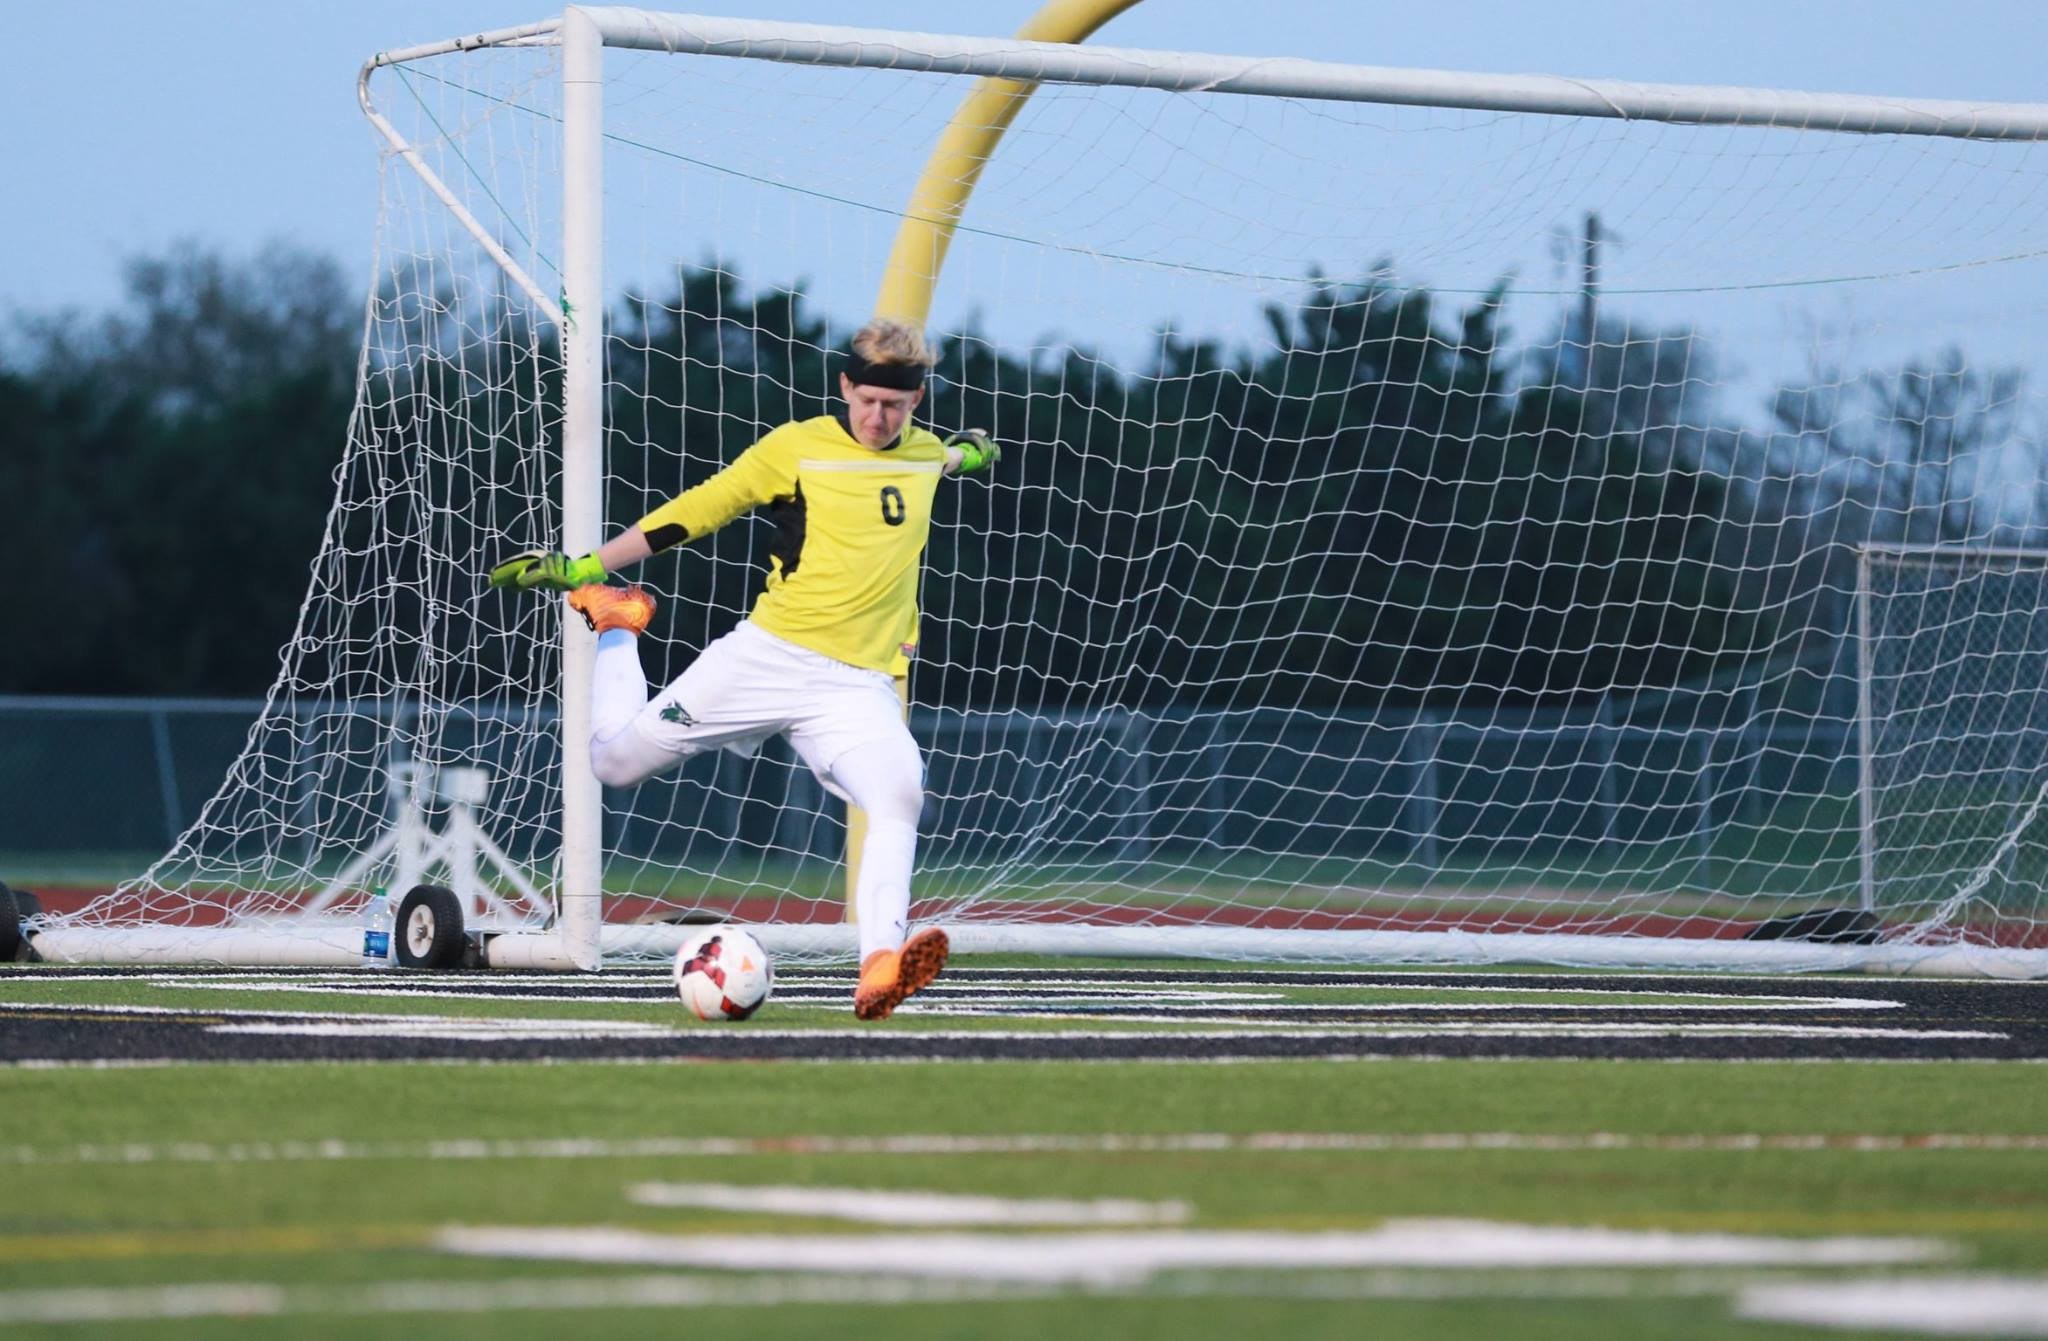 2016 All District Goal Keeper of the Year - JACK DODGE #0